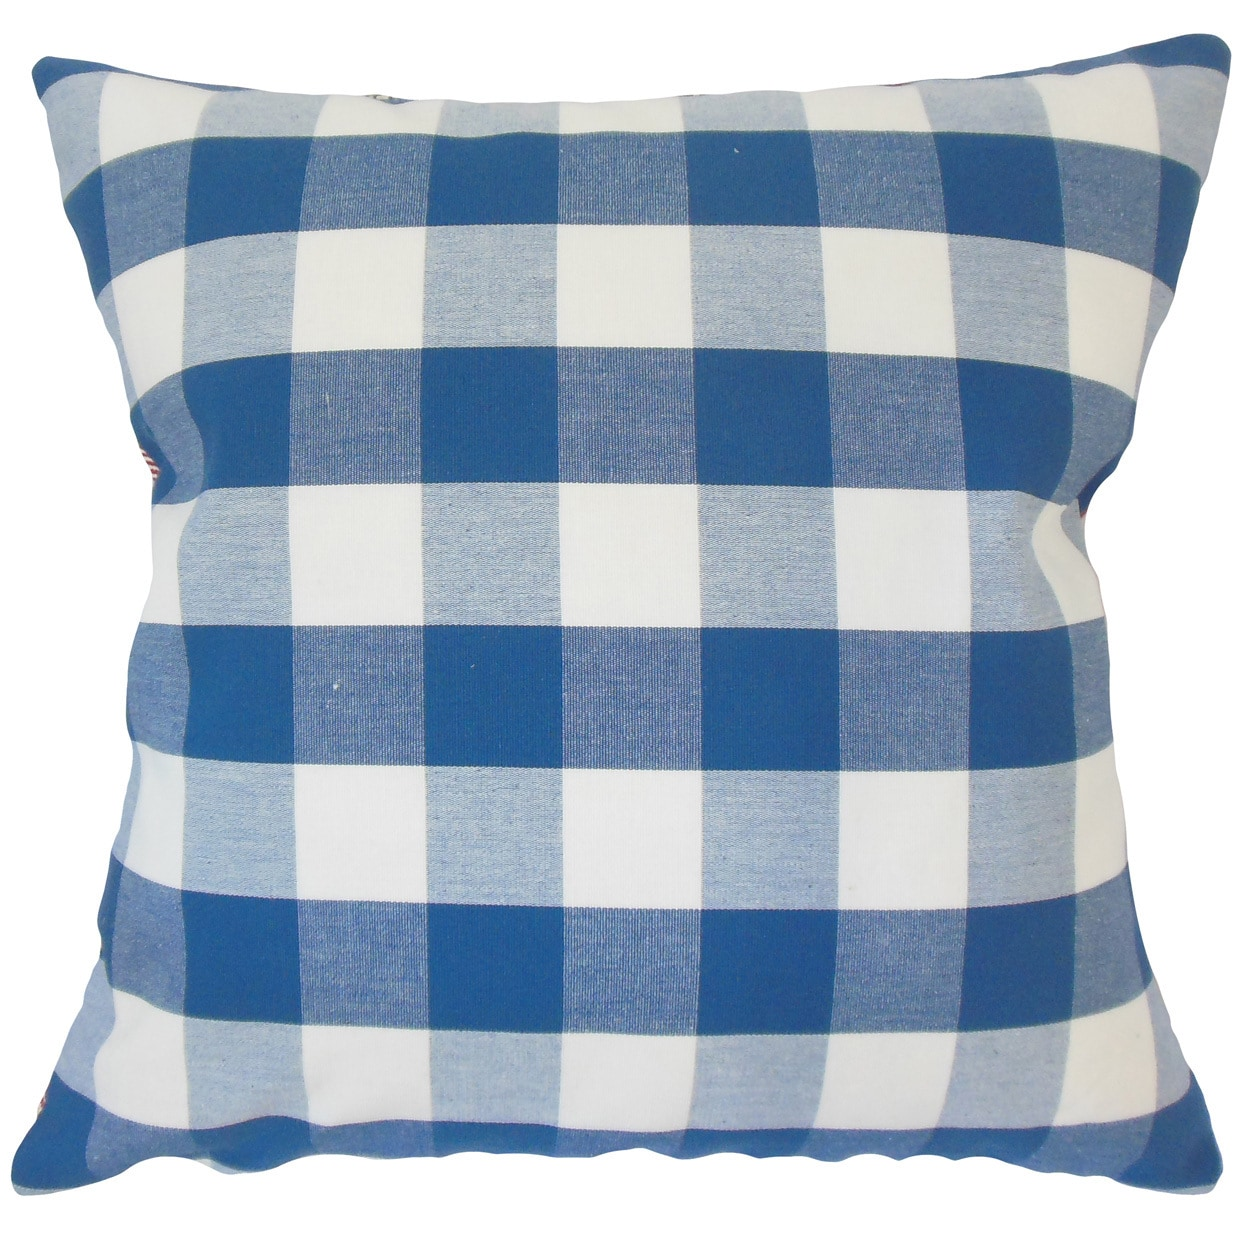 The Pillow Collection Yaritza Plaid 22-inch Down Feather Throw Pillow Blue